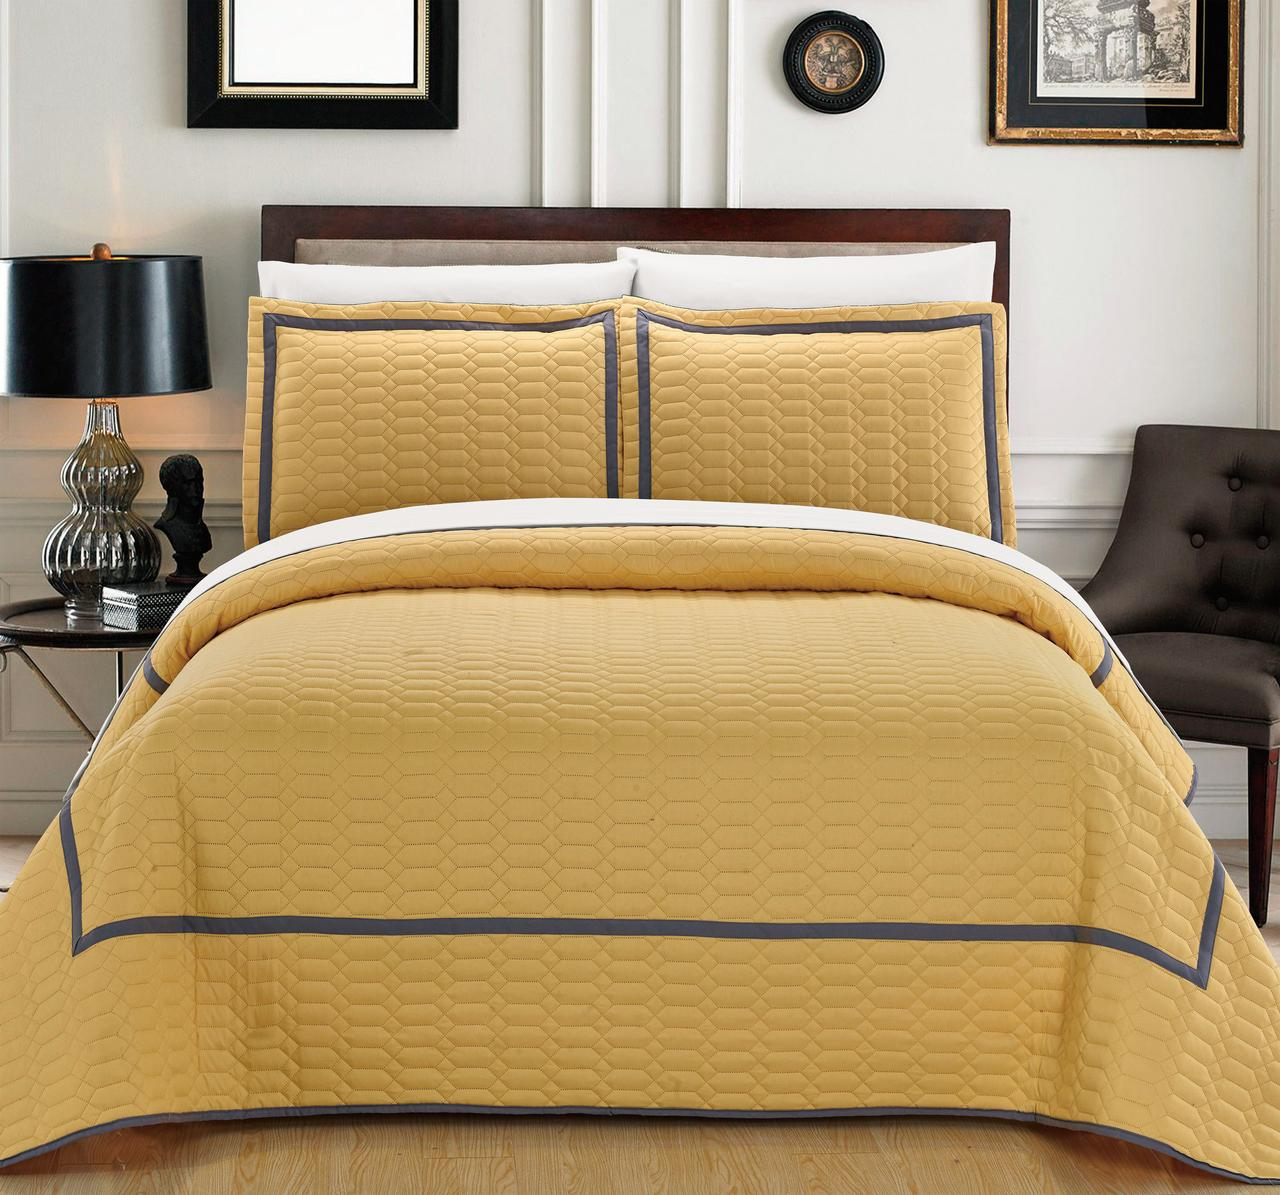 Chic Home 7-Piece Marla Hotel Collection 2 tone banded Quilted Geometrical Embroidered, Quilt in a bag, Includes sheets set Queen Quilt Set Yellow